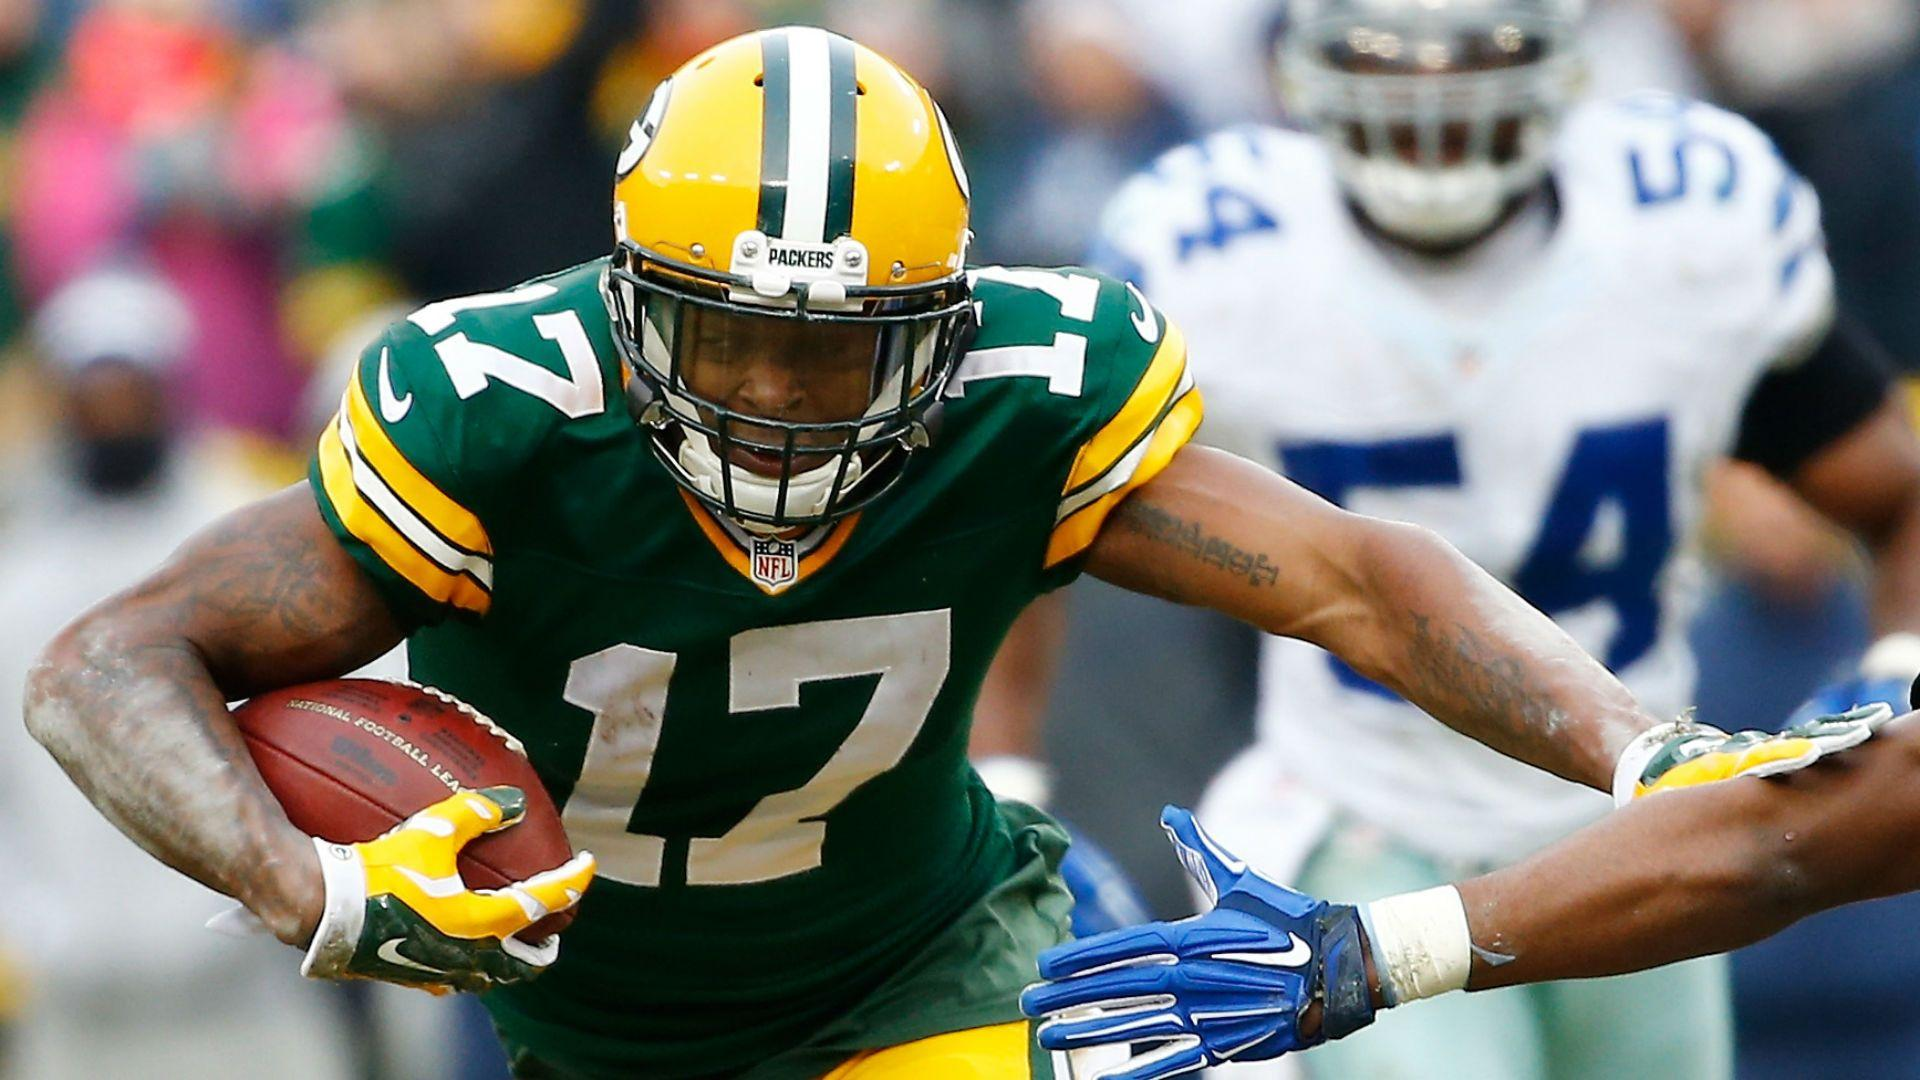 Can Davante Adams find bandwidth in Packers offense to beat ADP